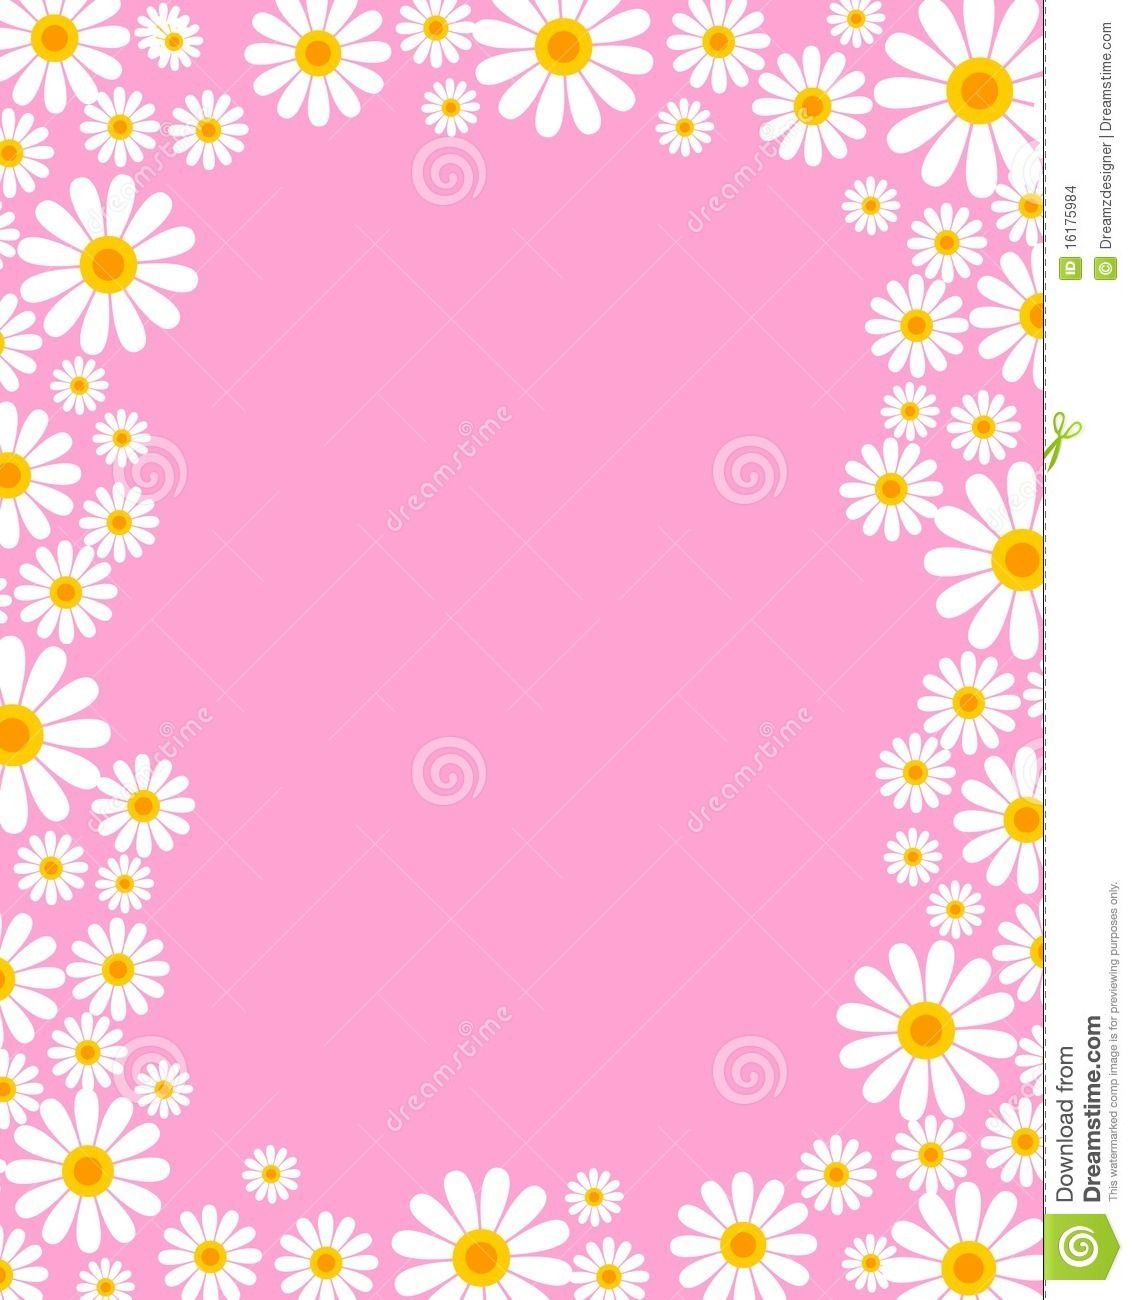 Floral border download from over 30 million high quality stock floral border download from over 30 million high quality stock photos images vectors izmirmasajfo